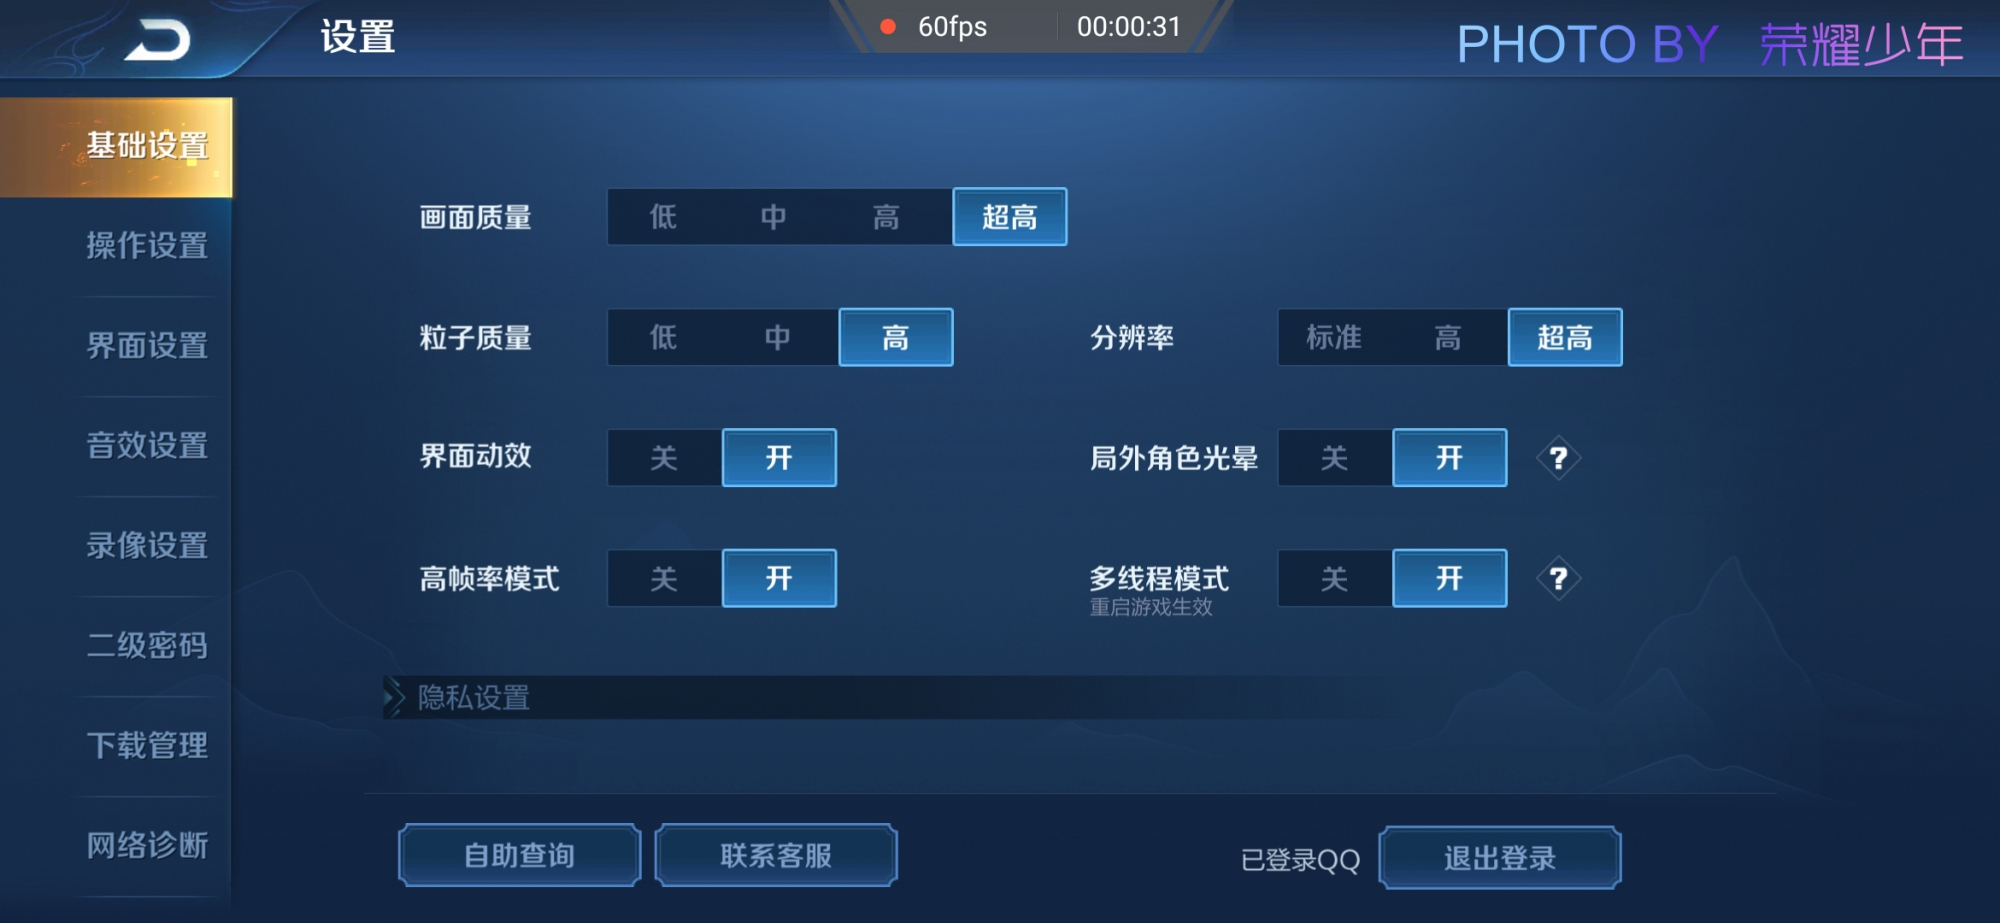 Screenshot_20190629_172328_com.tencent.tmgp.sgame.jpg